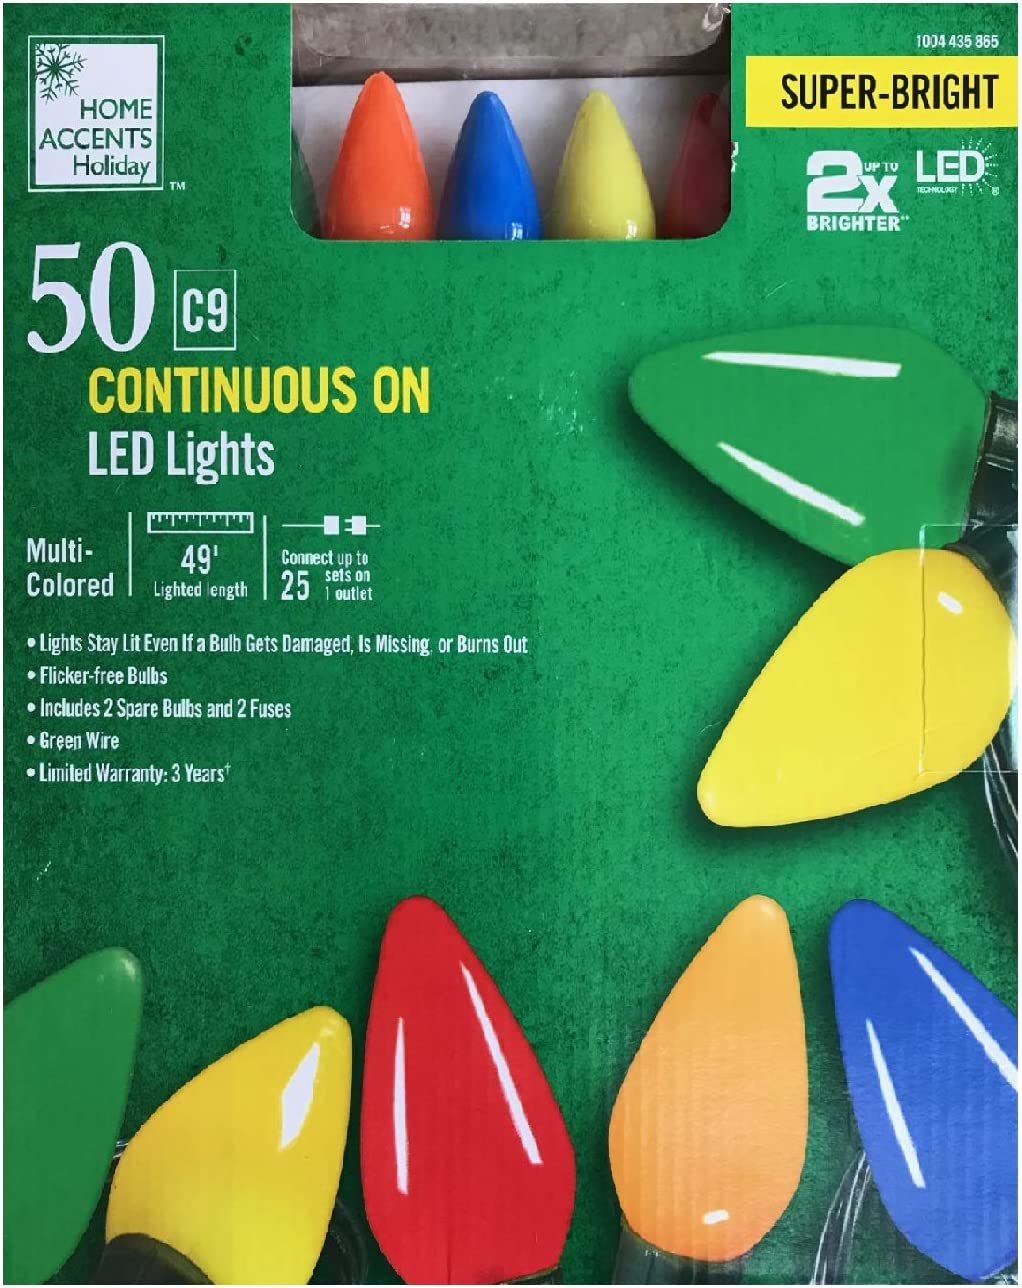 Home Accents Holiday 50 C9 Continuous On LED Light - Multi-Colored (Translucent)